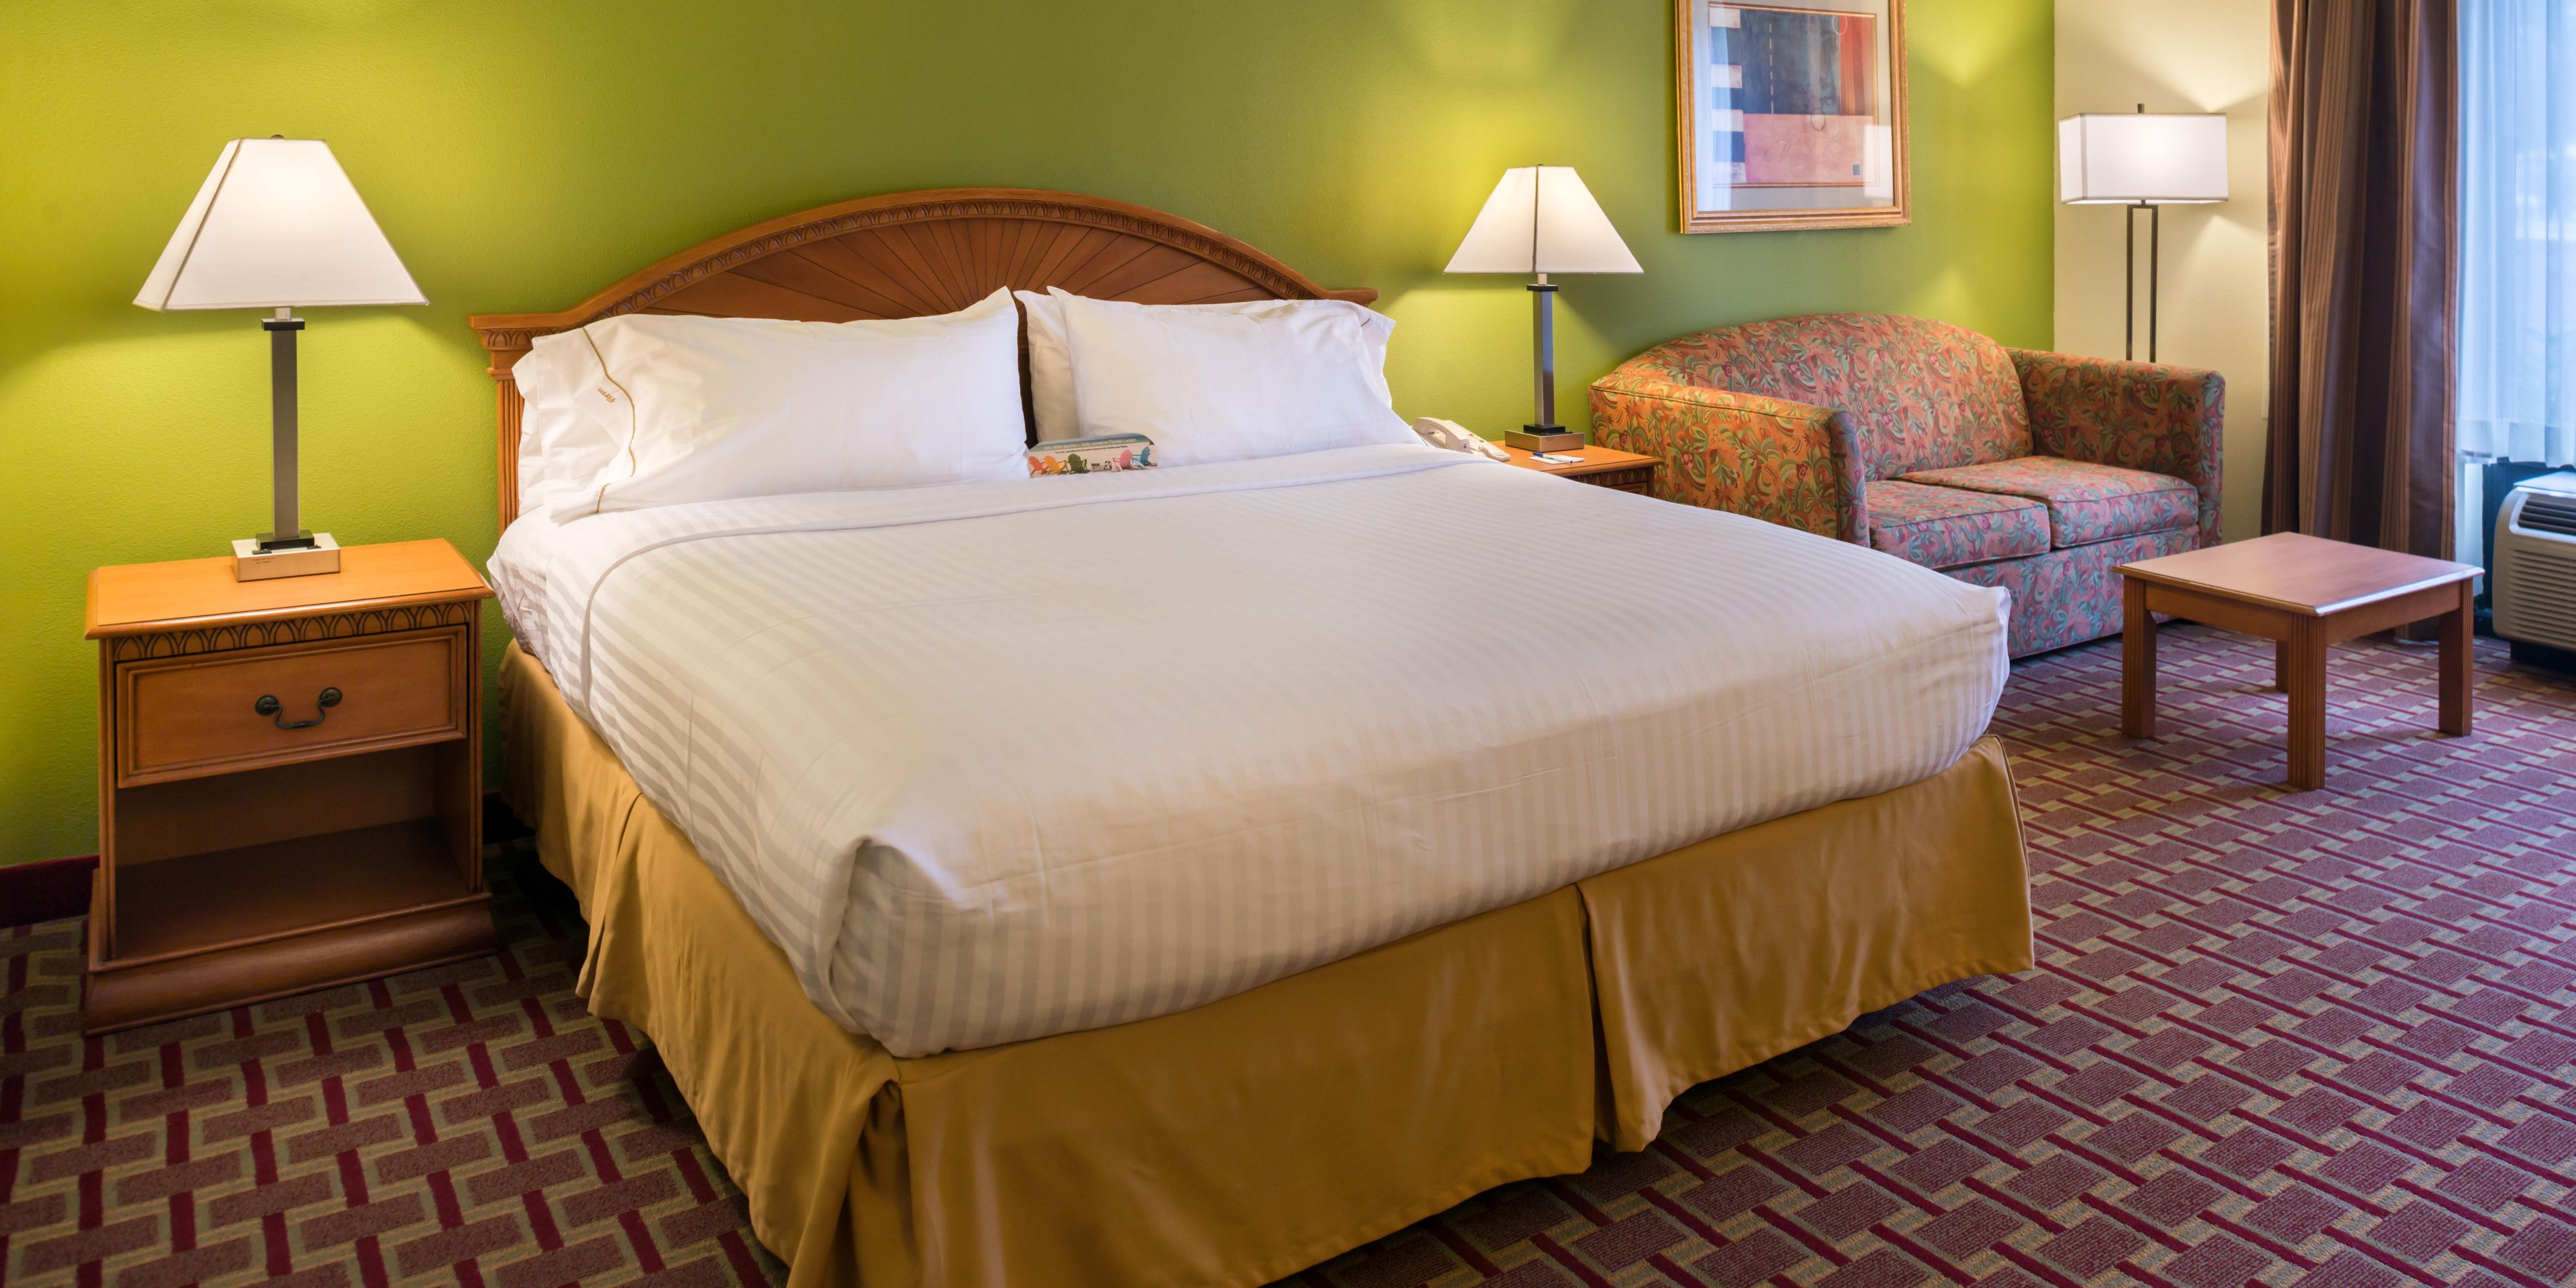 holiday-inn-express-and-suites-tampa-4175991129-2x1